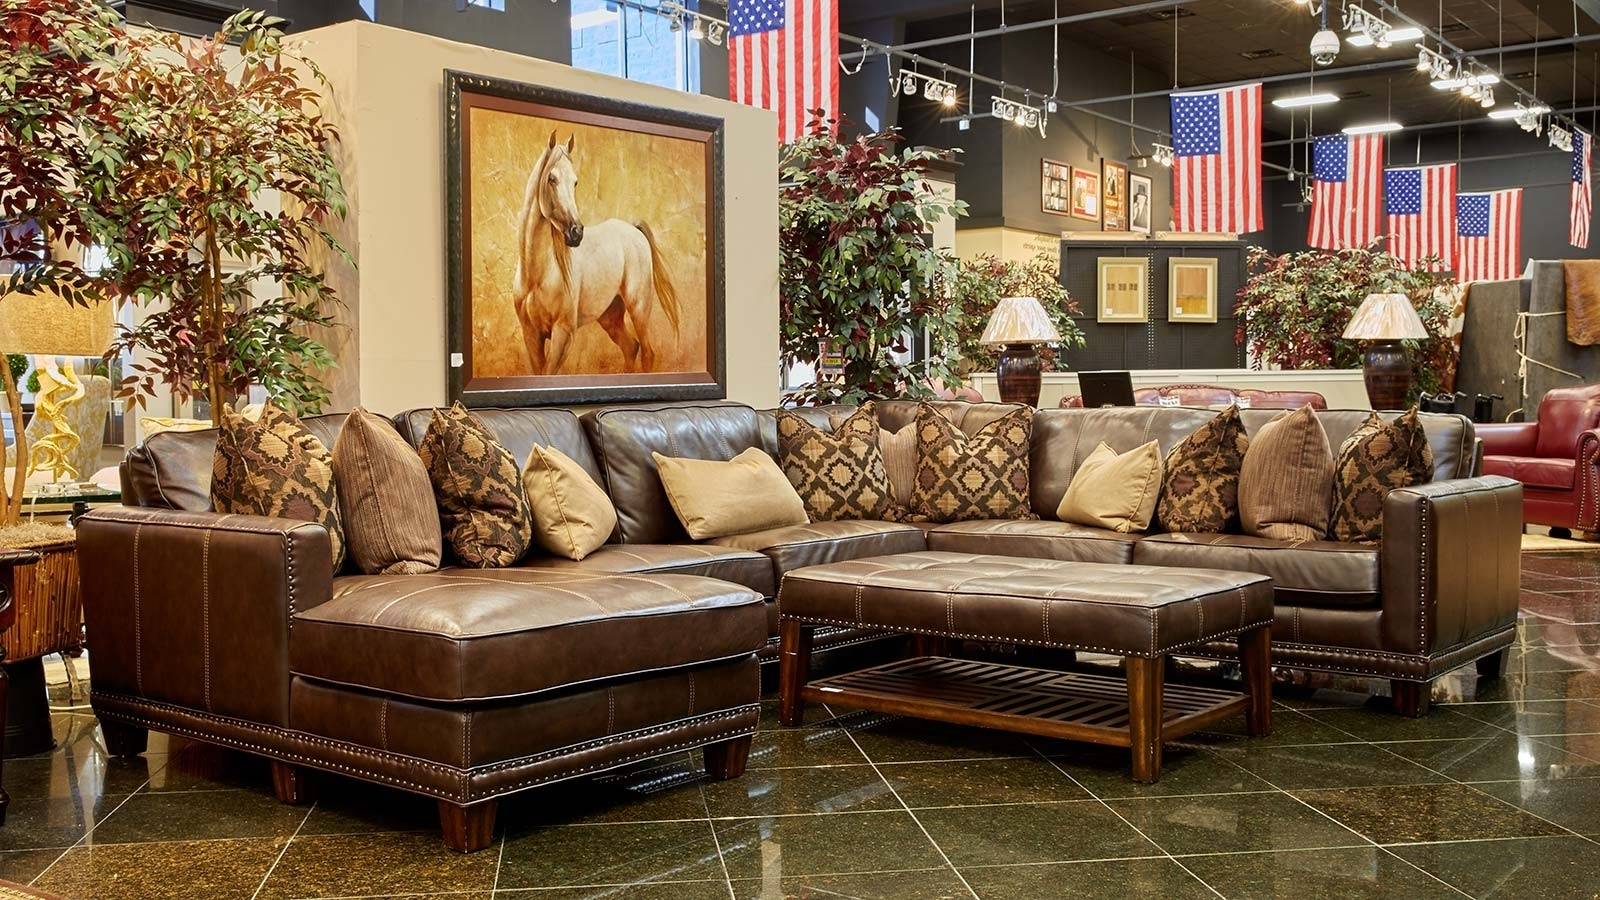 Gallery Furniture Intended For Royal Furniture Sectional Sofas (View 13 of 20)